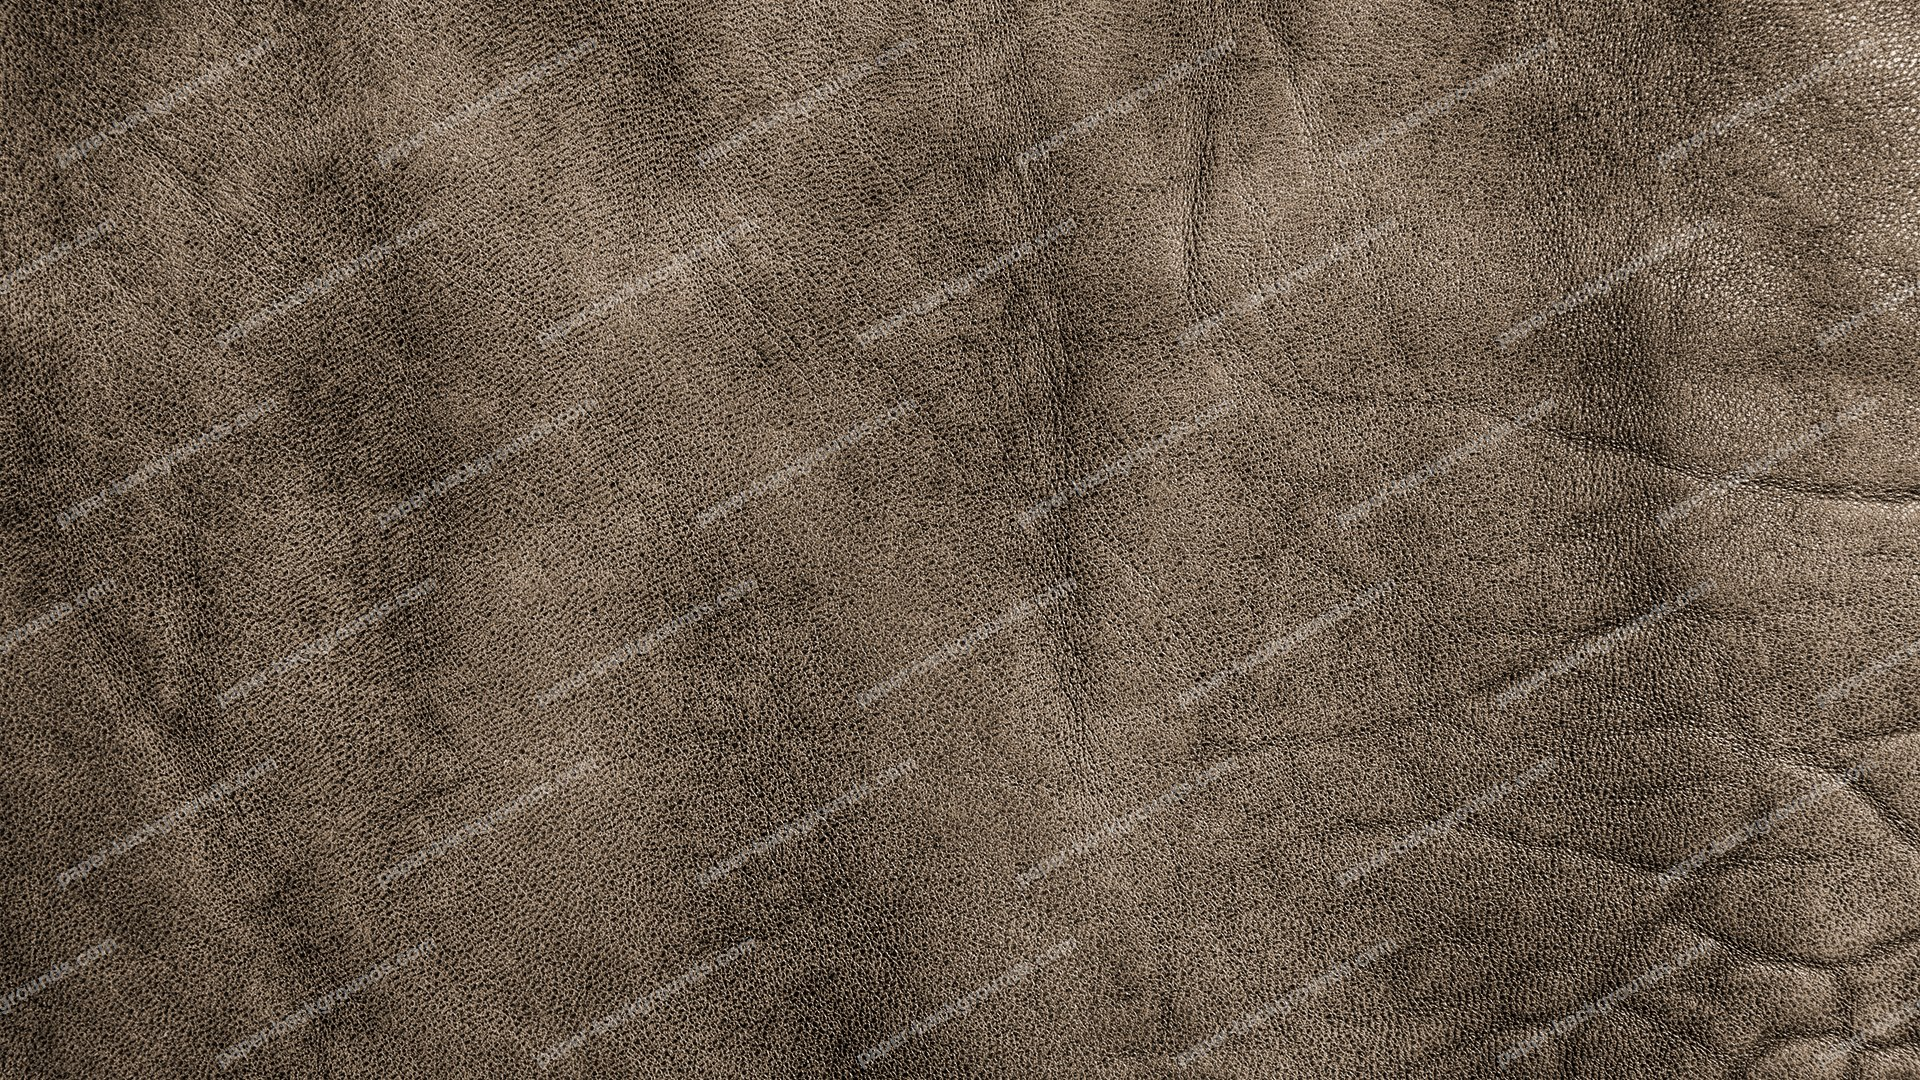 Gray Vintage Leather Background HD 1920 x 1080p